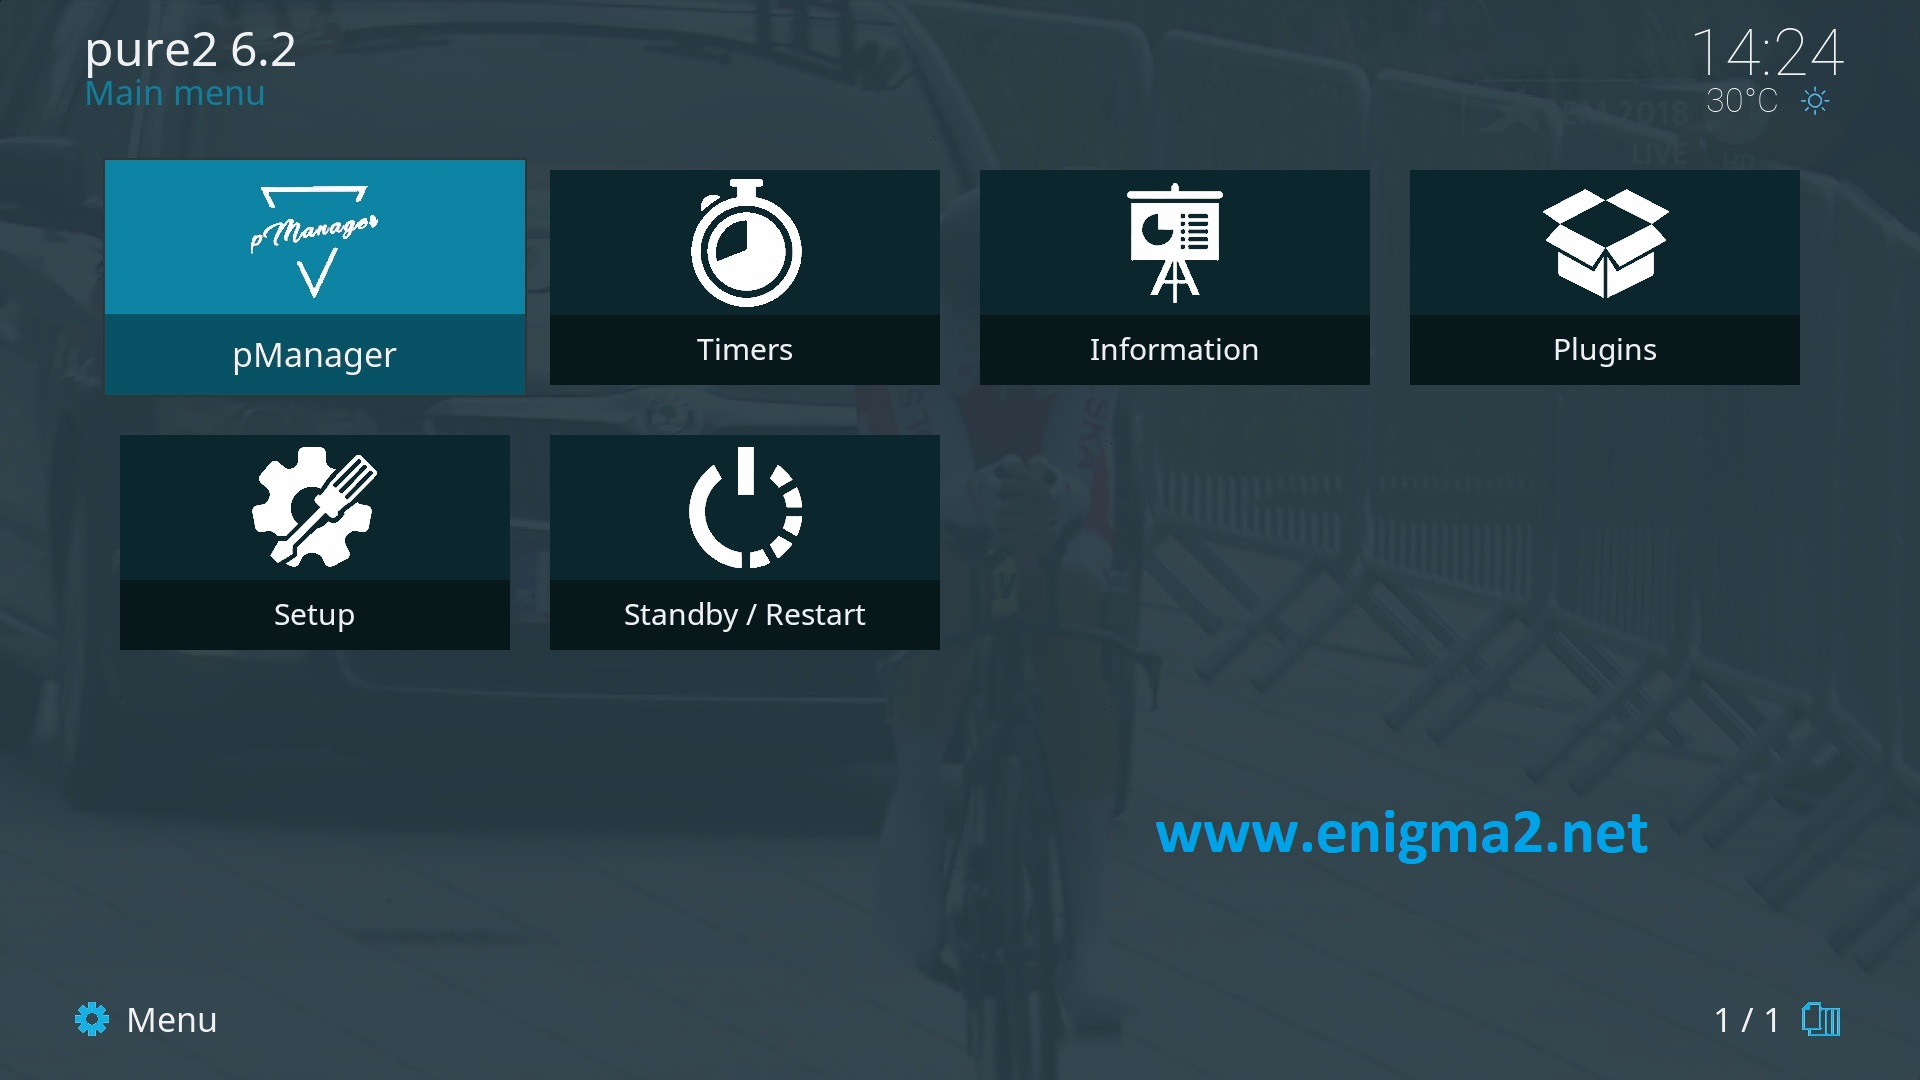 TUTORIAL] How to install and configure NCAM on PurE2 – ENIGMA2